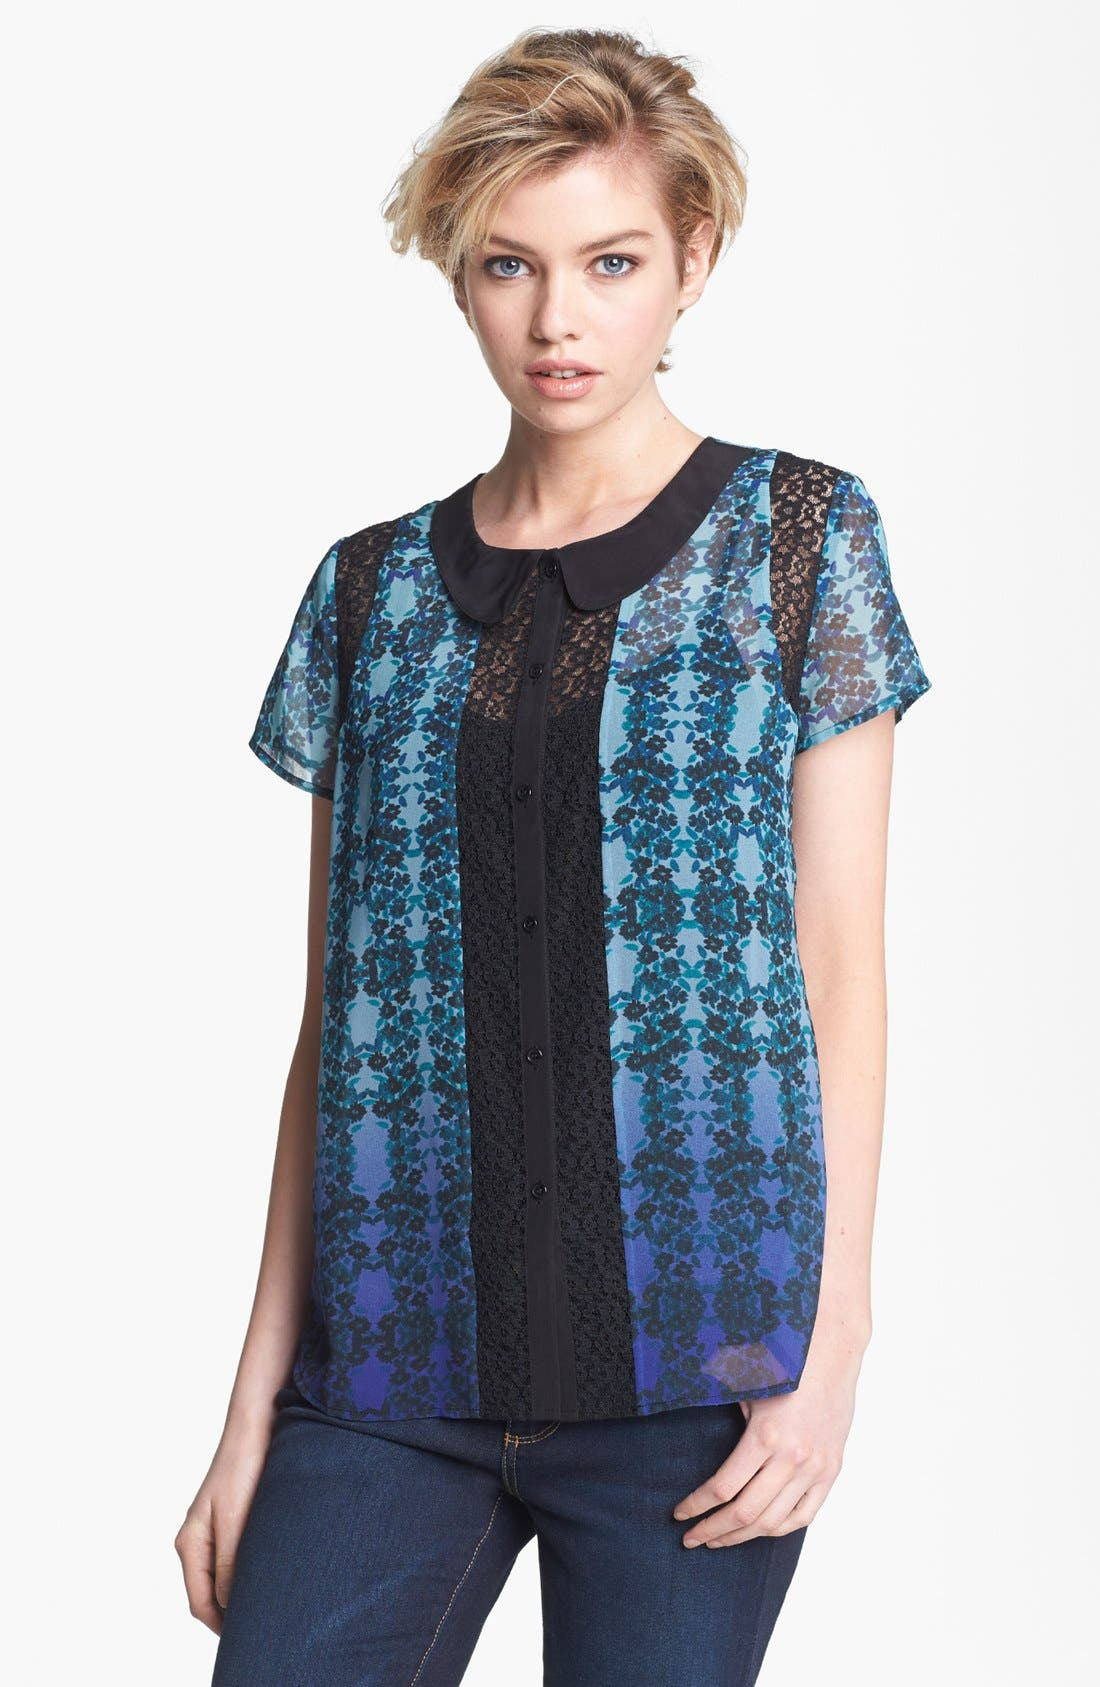 Alternate Image 1 Selected - Hinge® Print Chiffon & Lace Blouse